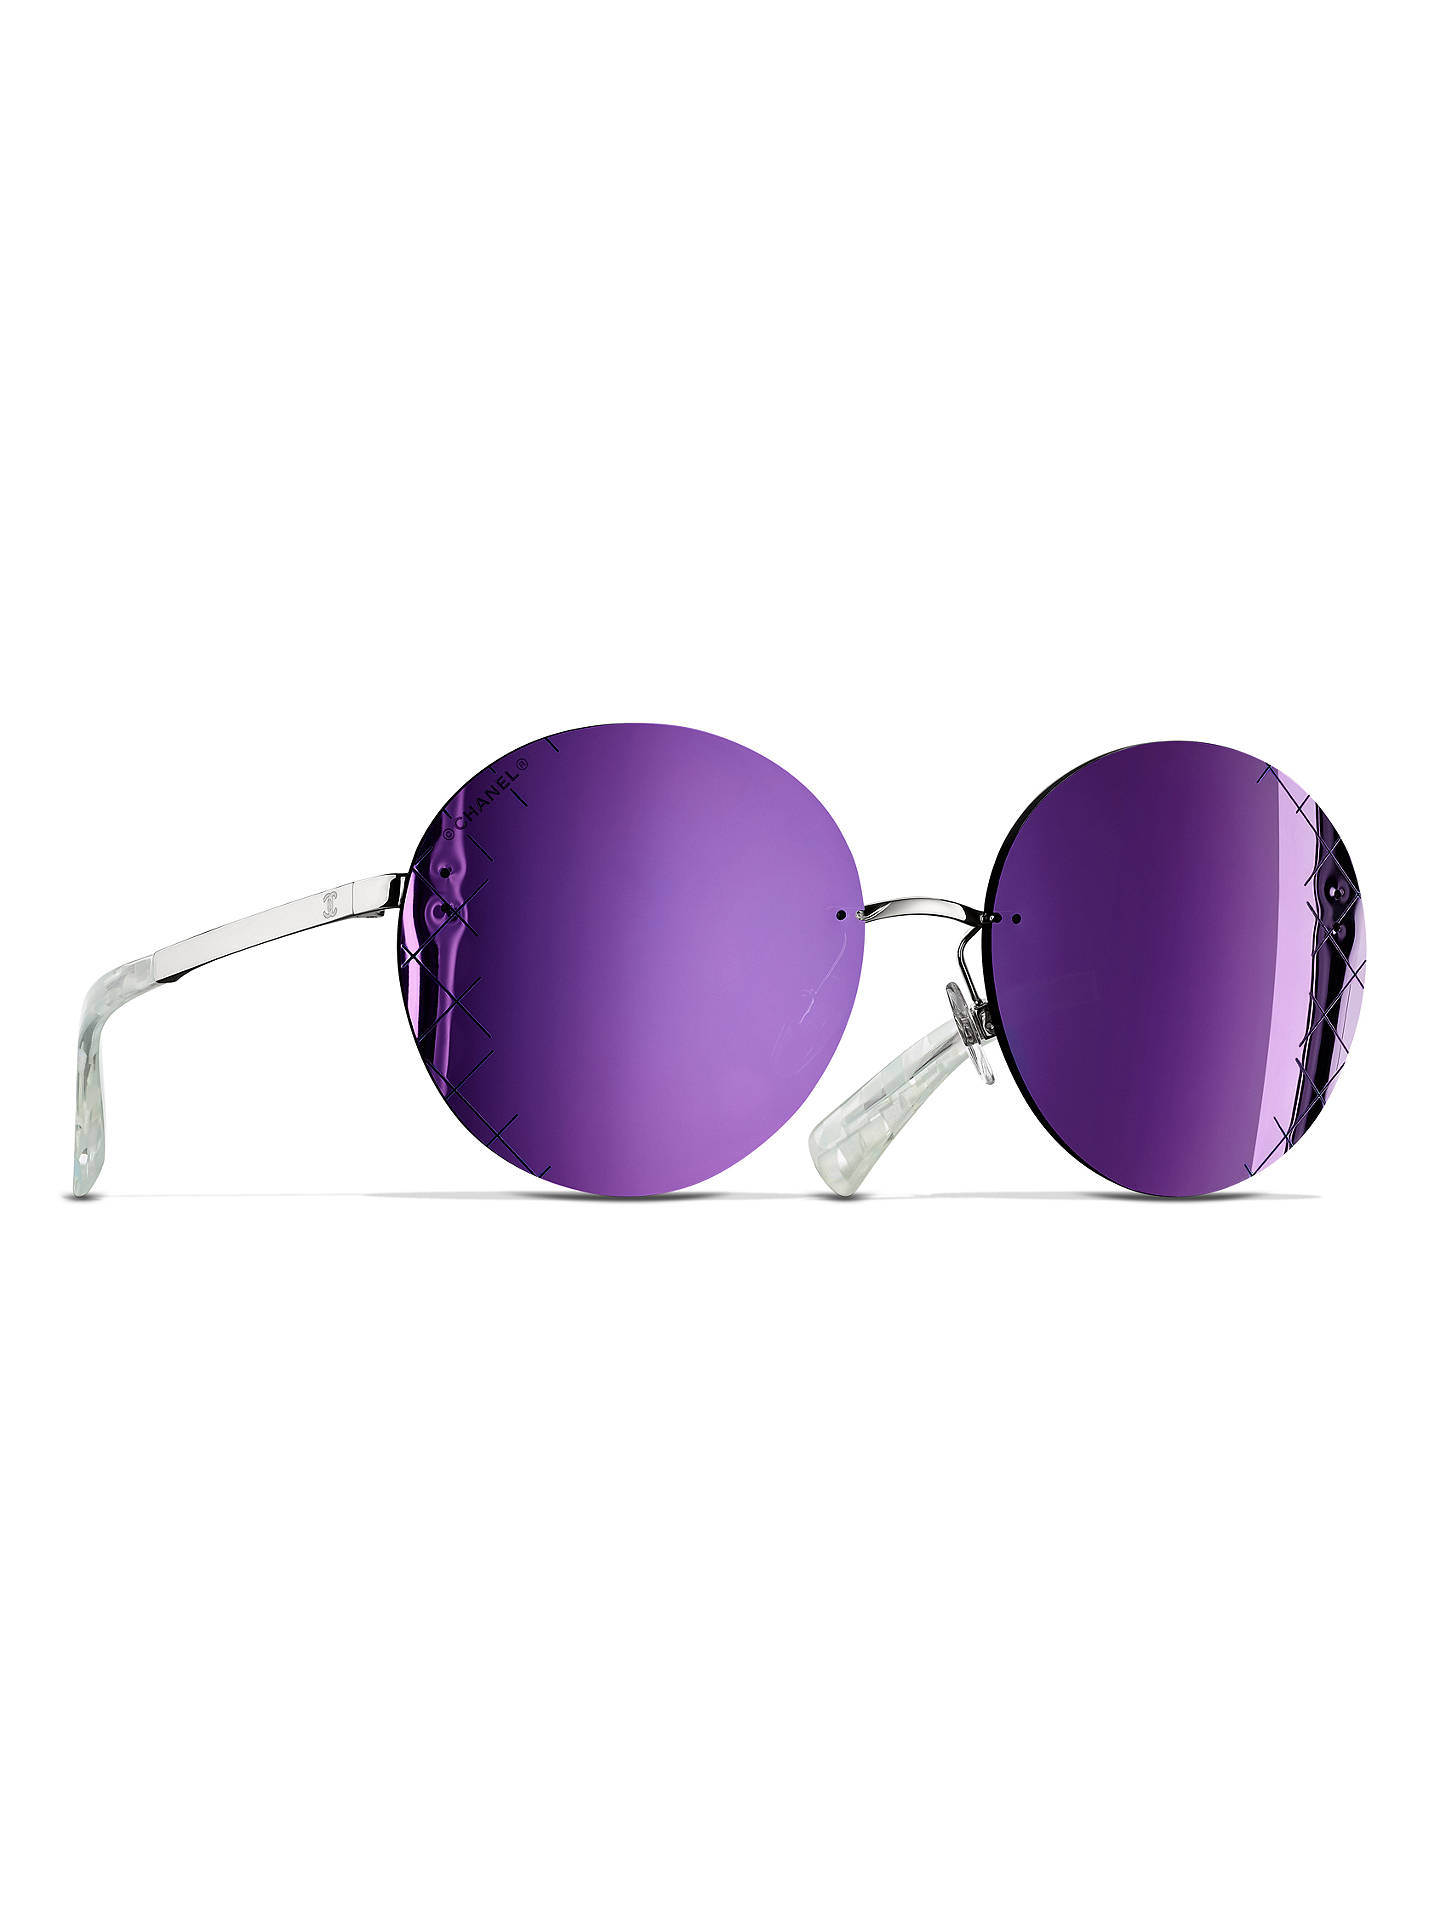 0fc2f2d39fa8 Buy CHANEL Round Sunglasses CH4216 Silver Purple Online at johnlewis.com ...